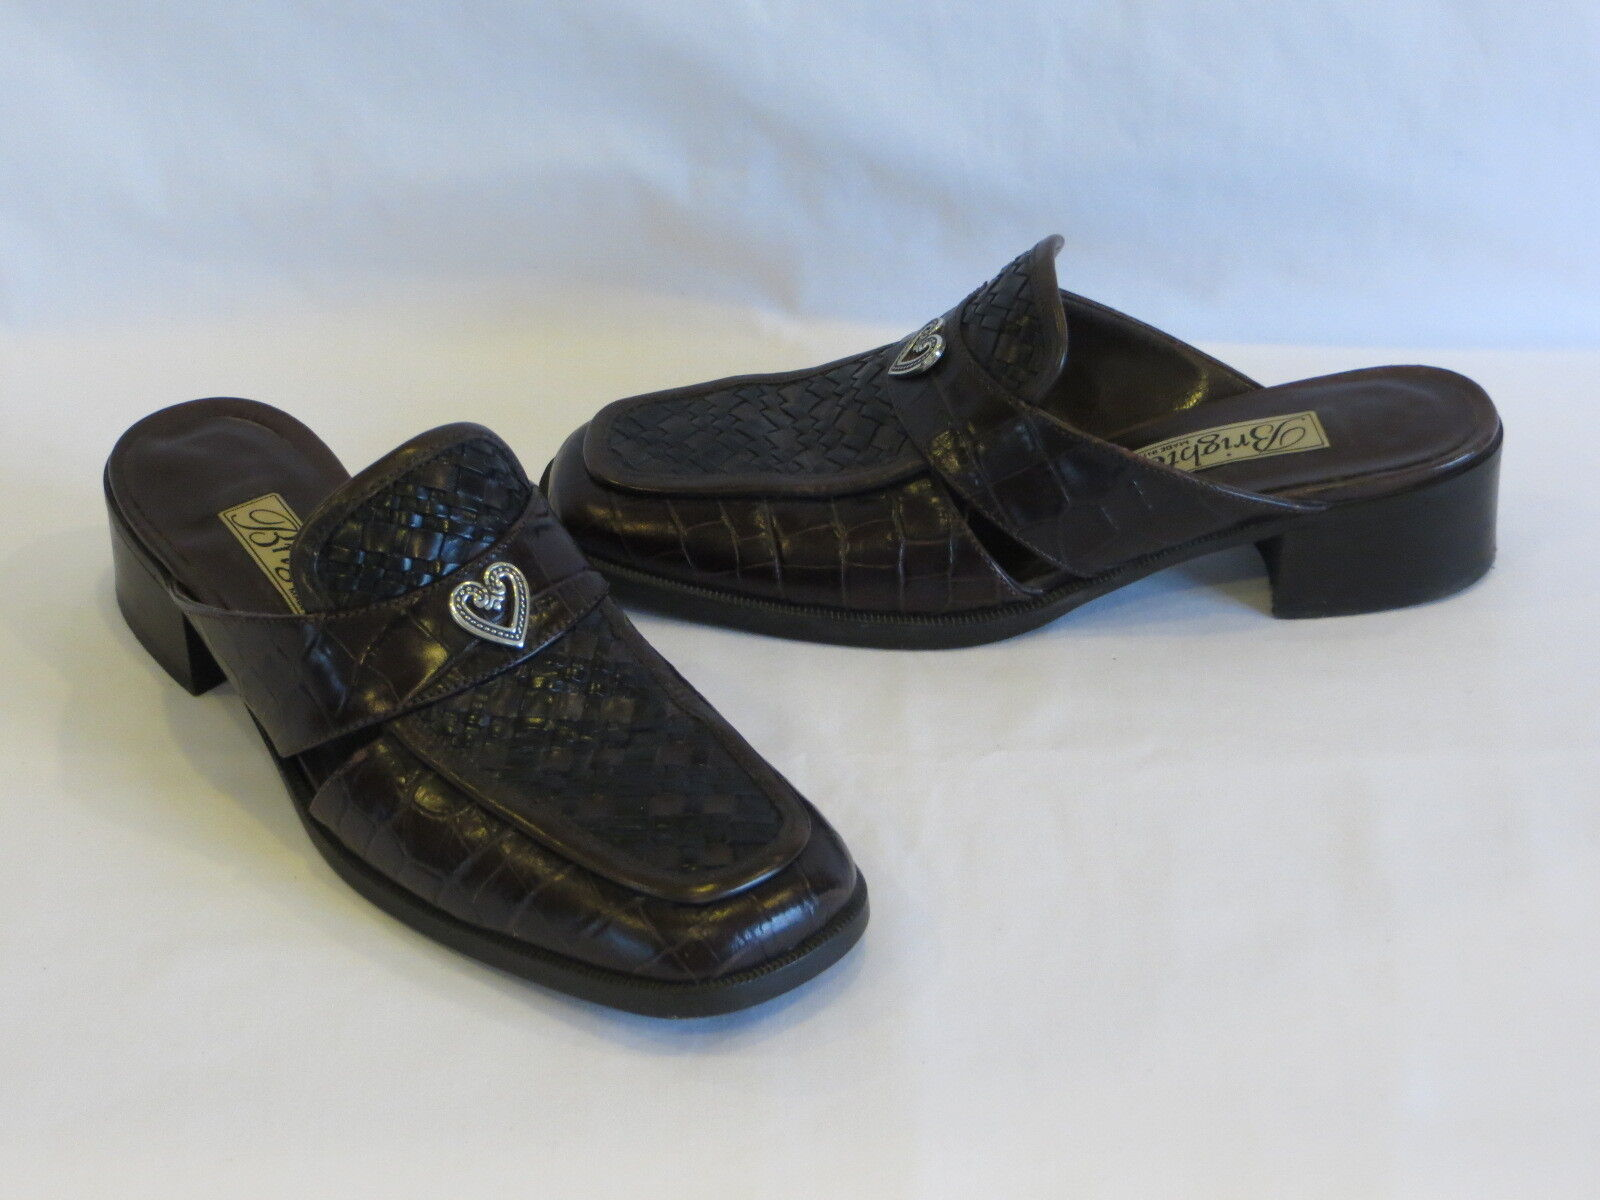 Brighton - Black Brown Woven Leather Loafers Slides Metal Heart Accent-8.5N